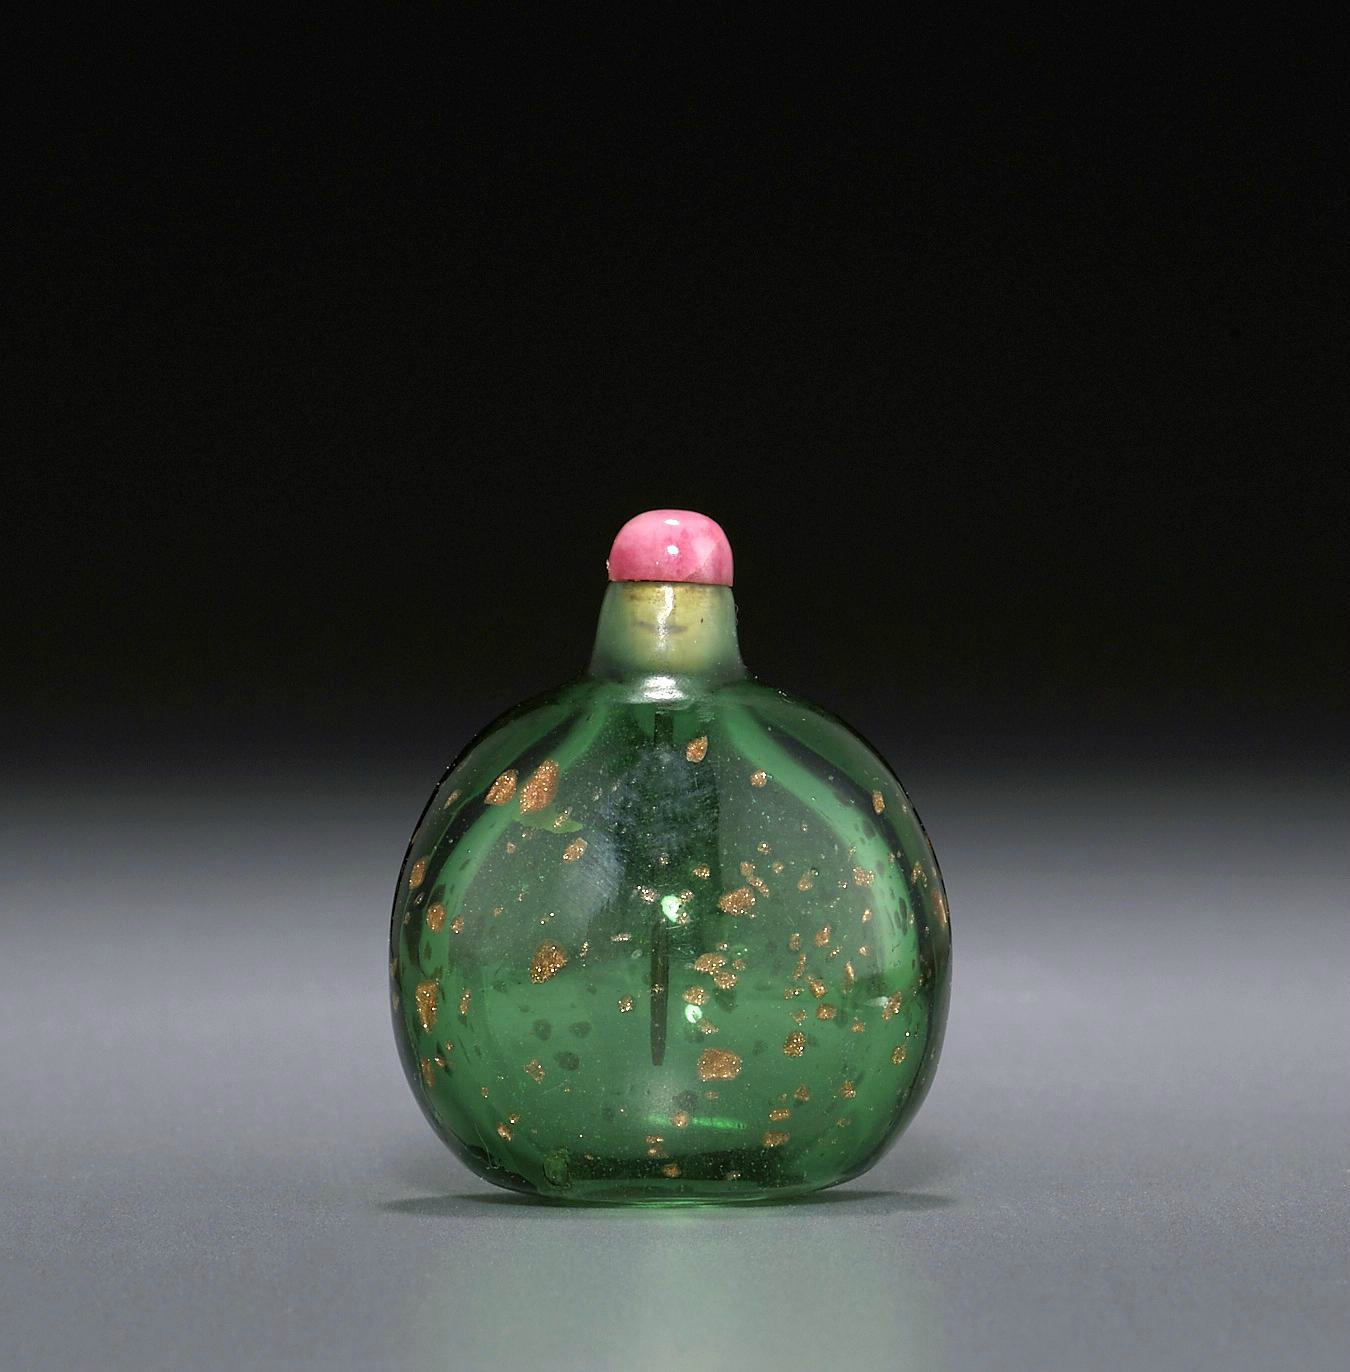 A gold aventurine-splashed green glass snuff bottle, Imperial Palace Workshops, Beijing, 18th century